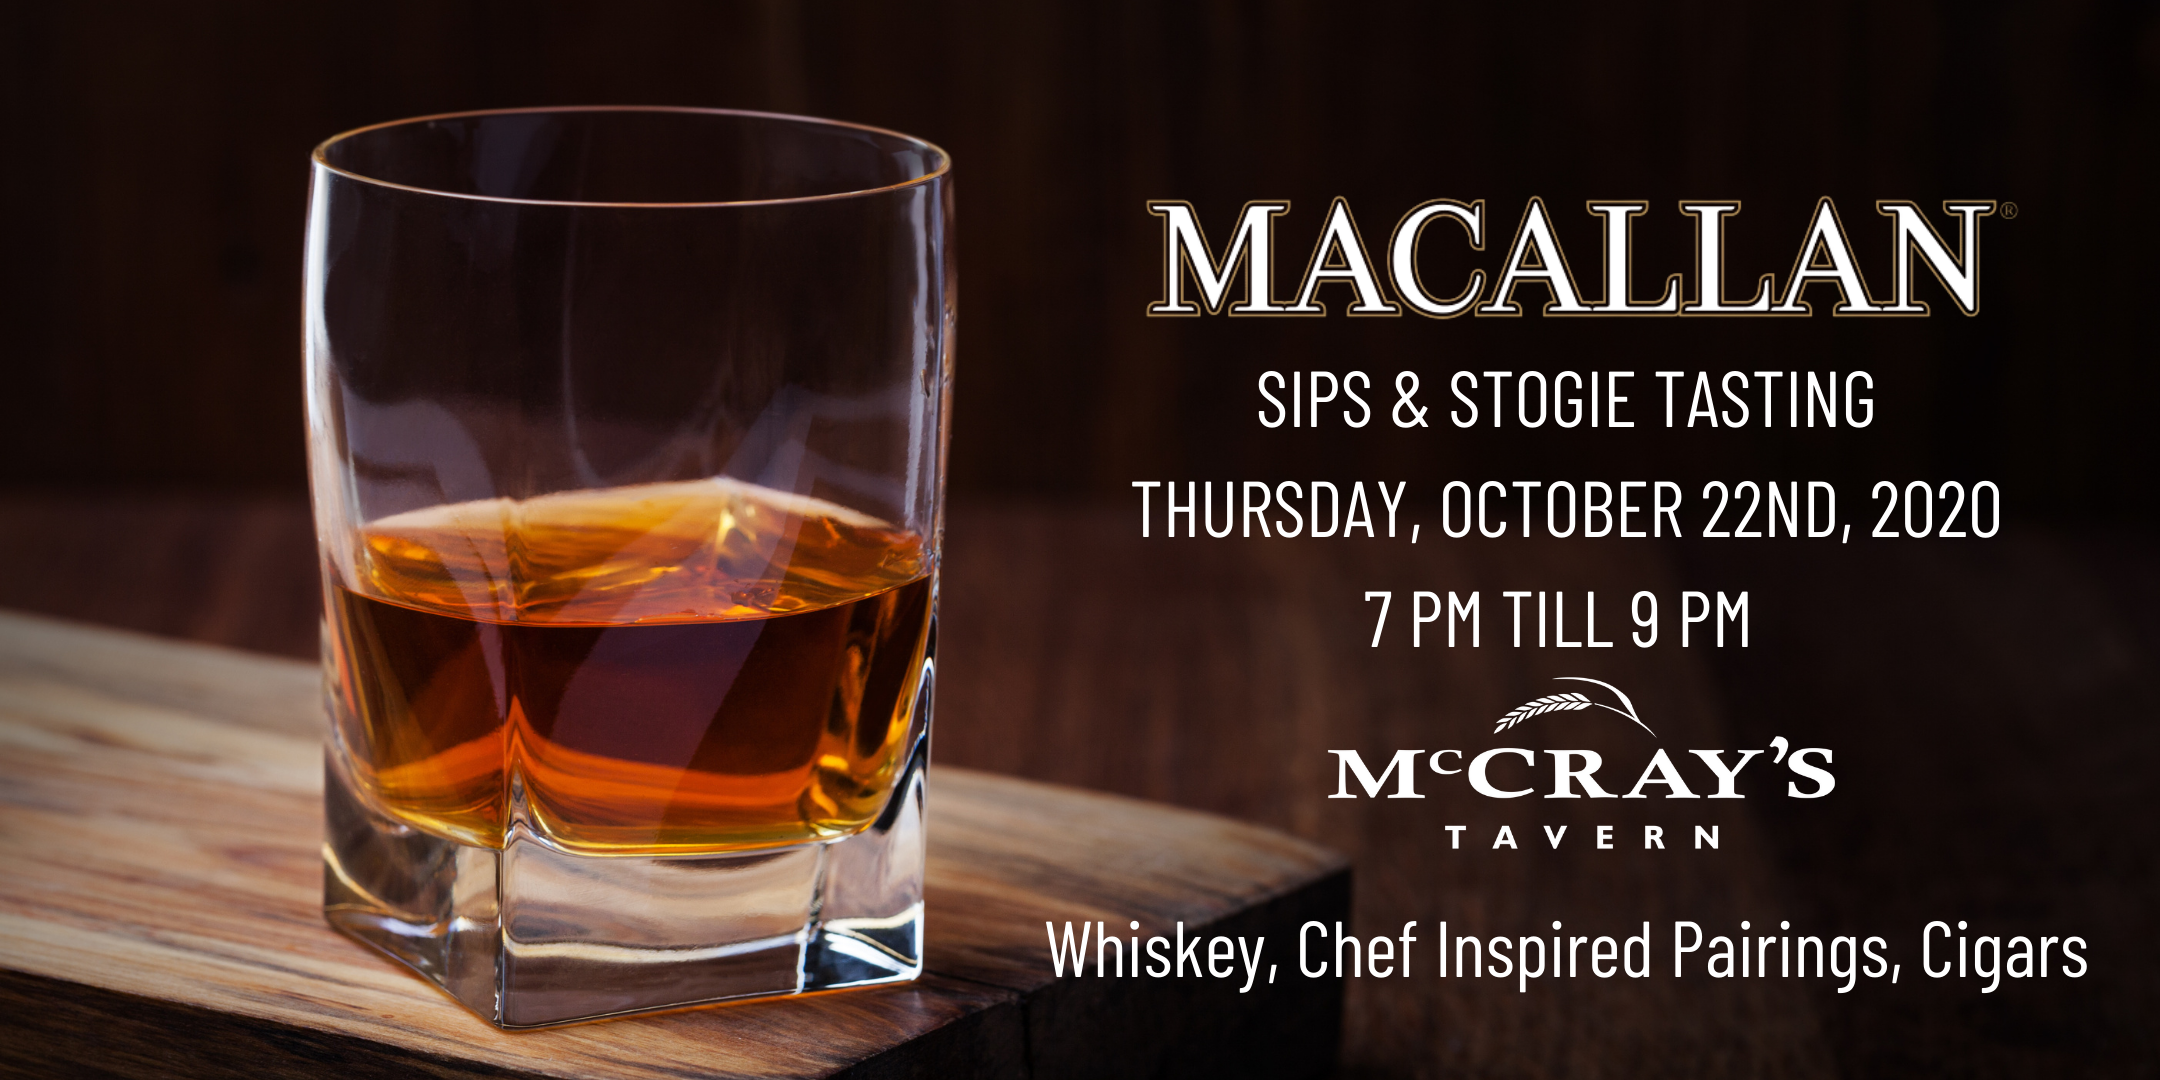 Sips & Stogies   The Macallan Scotch Whisky Tasting at East Cobb